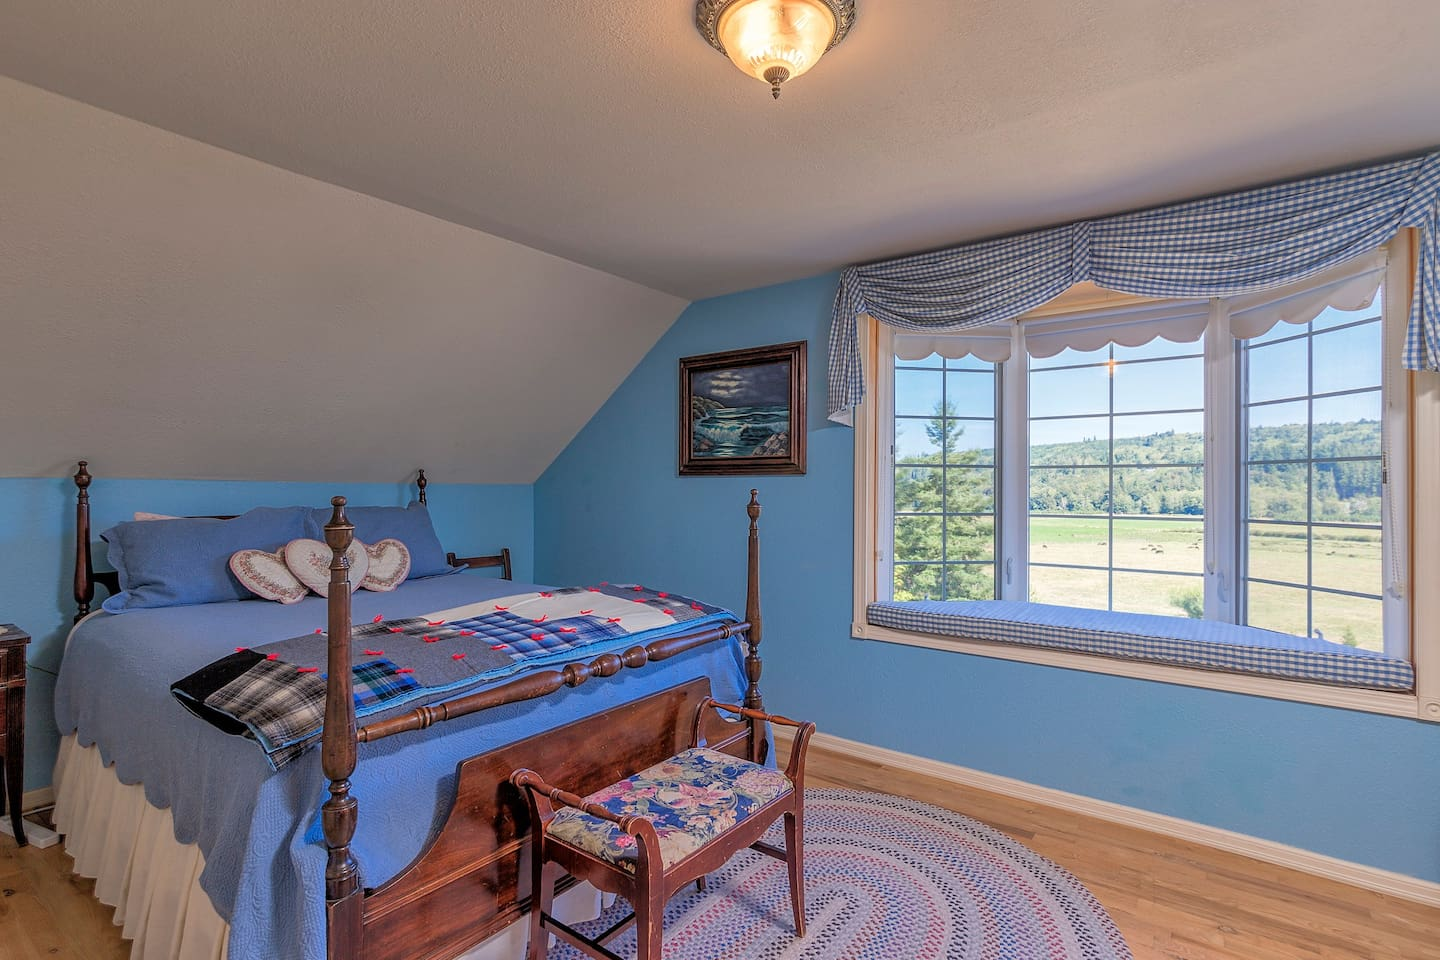 The spacious Valley View Room features a queen bed and is part of a two-bedroom suite with a private bath